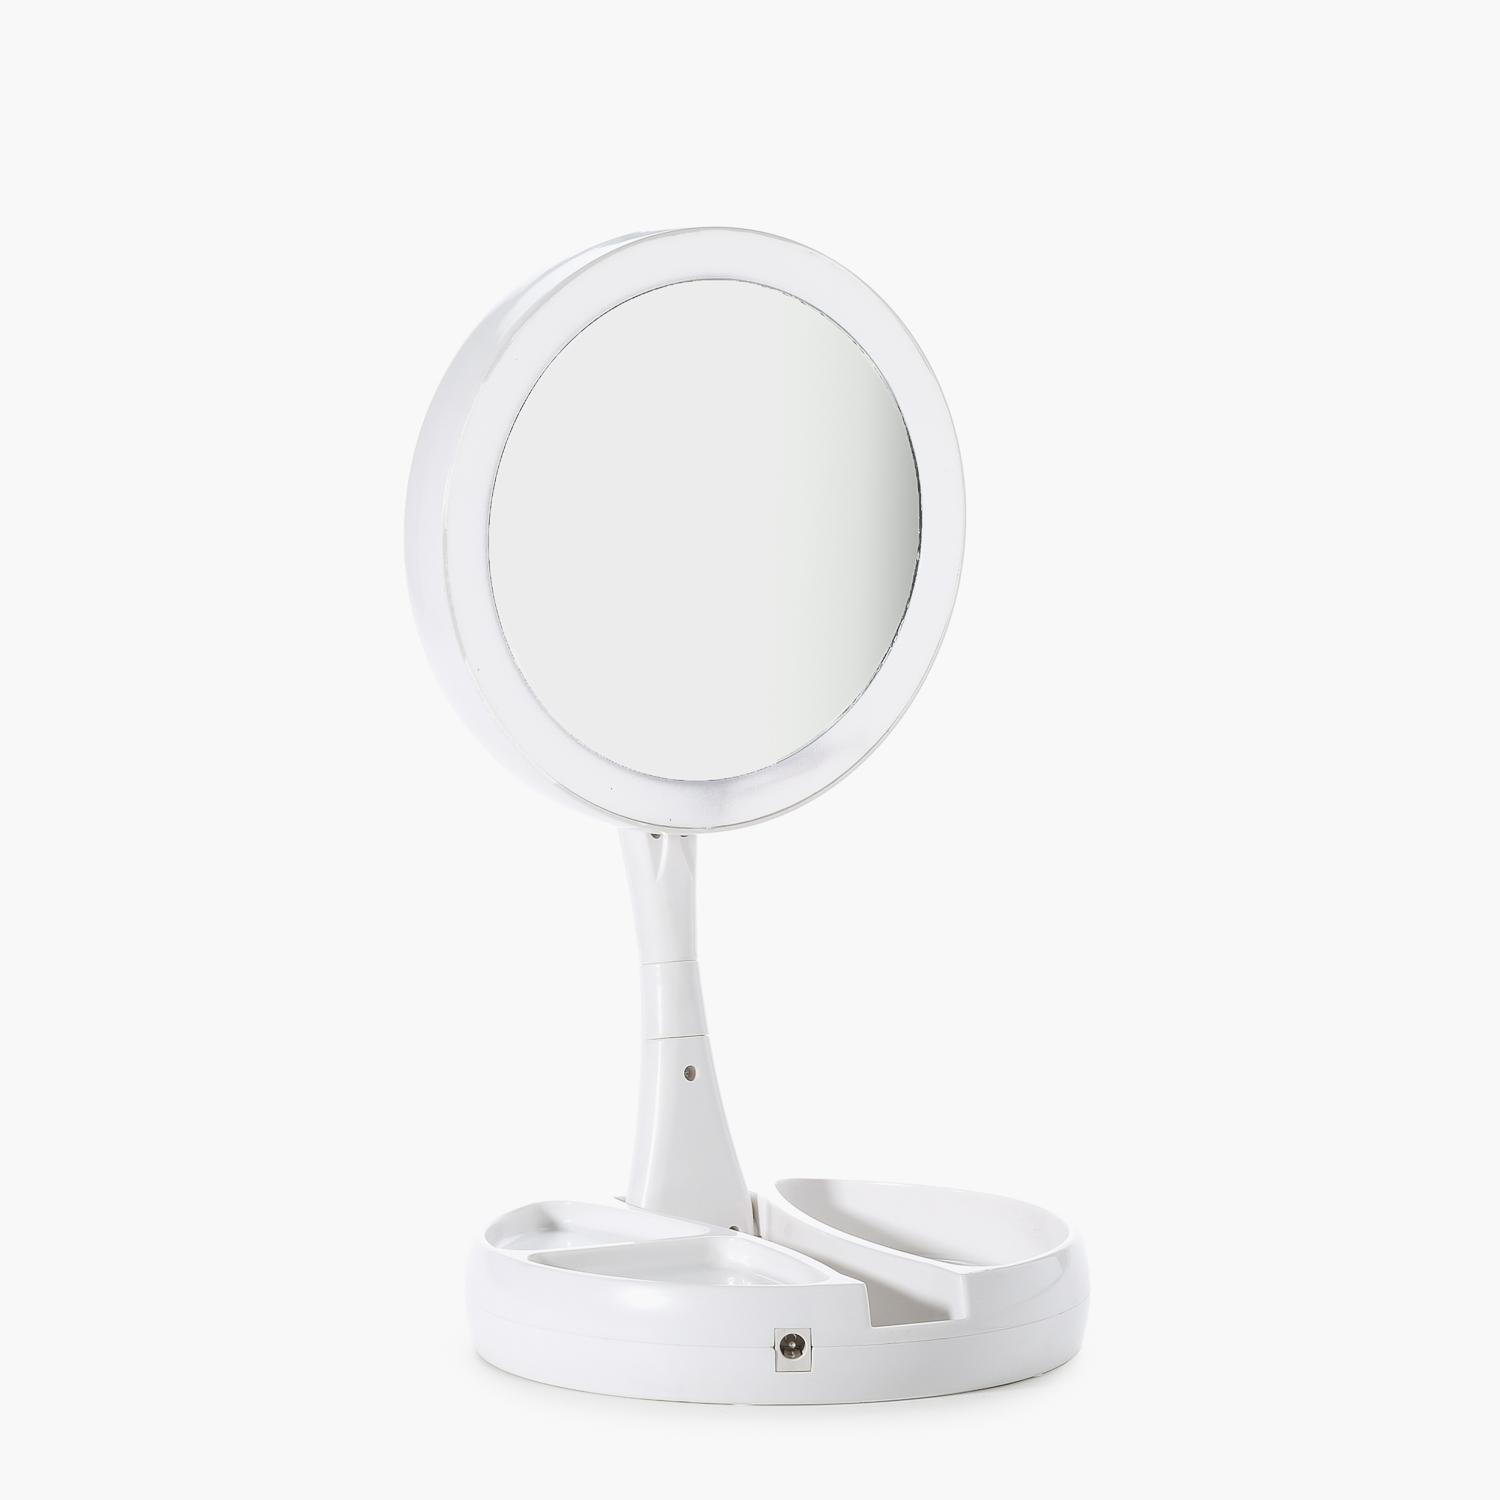 Foldaway LED Beauty Mirror Philippines